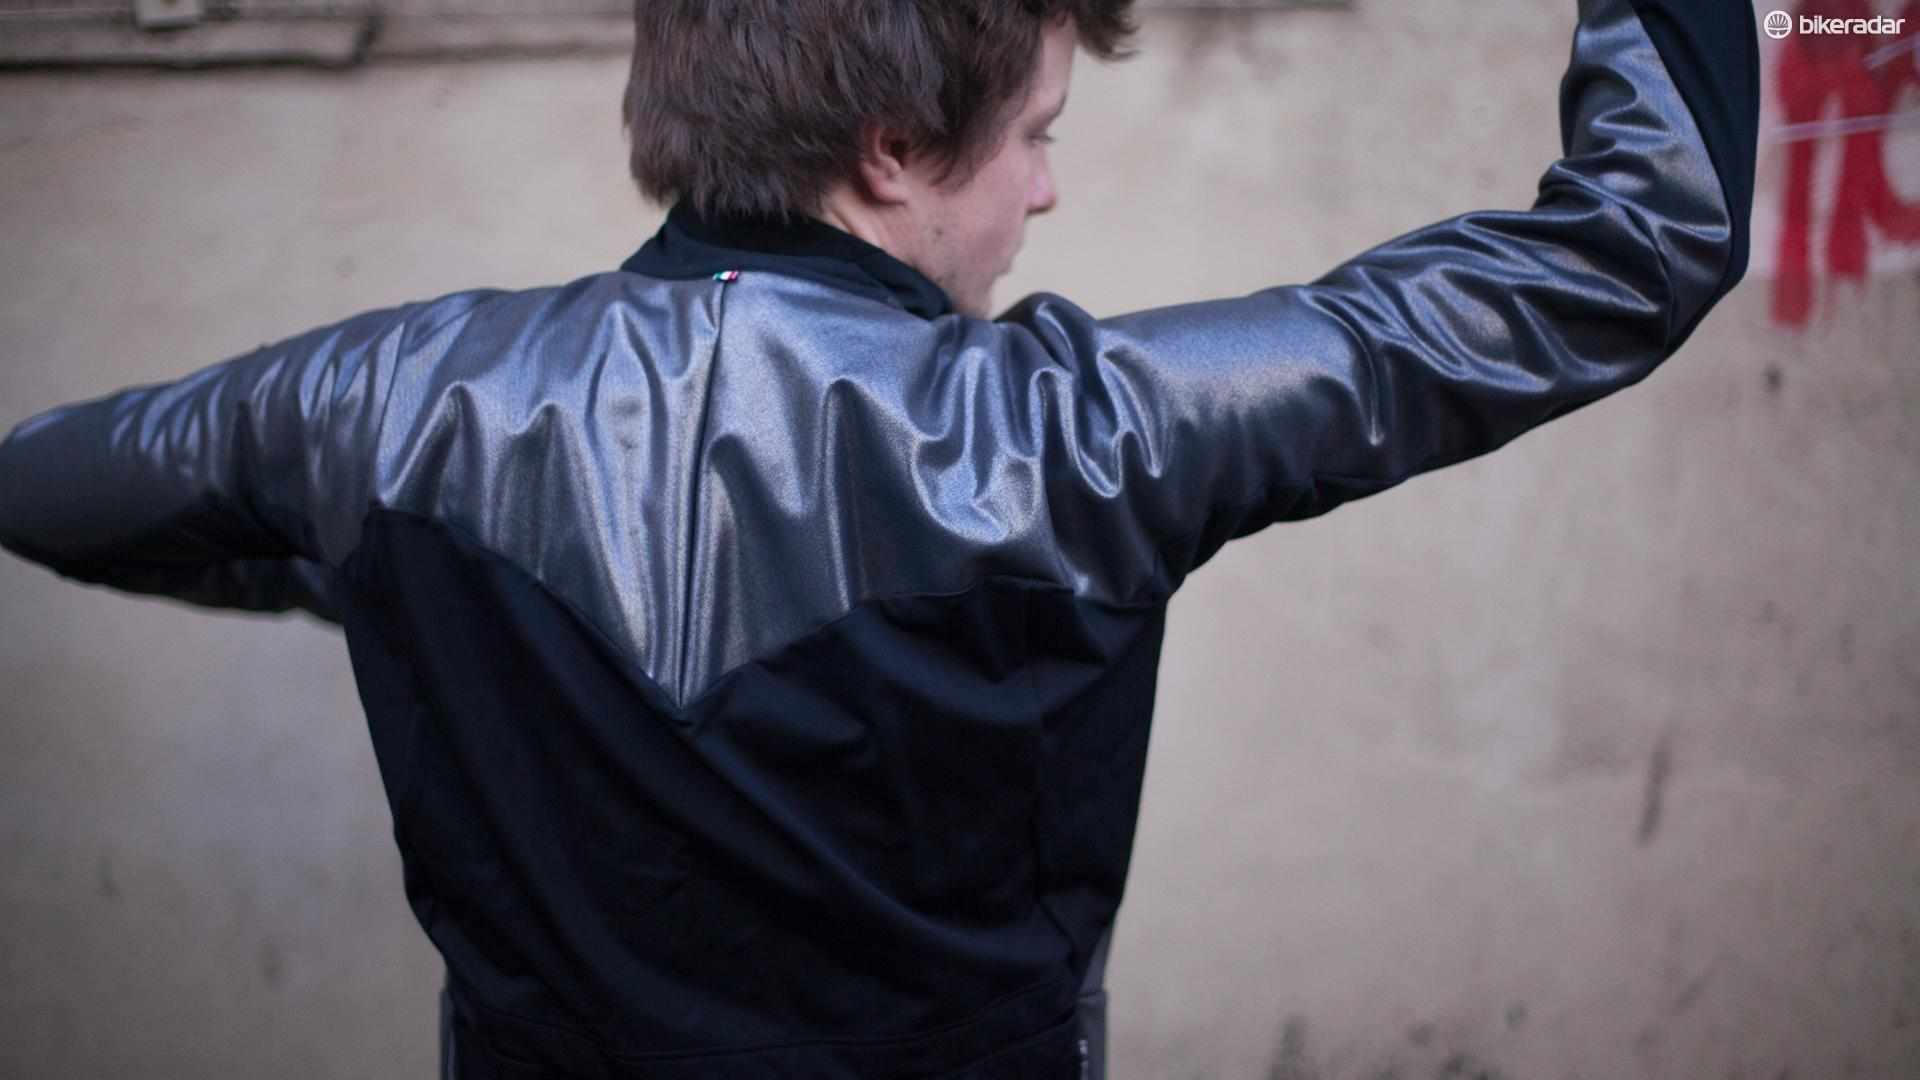 The Q36.5 Termica Jacket affords high-performance protection with distinctive looks